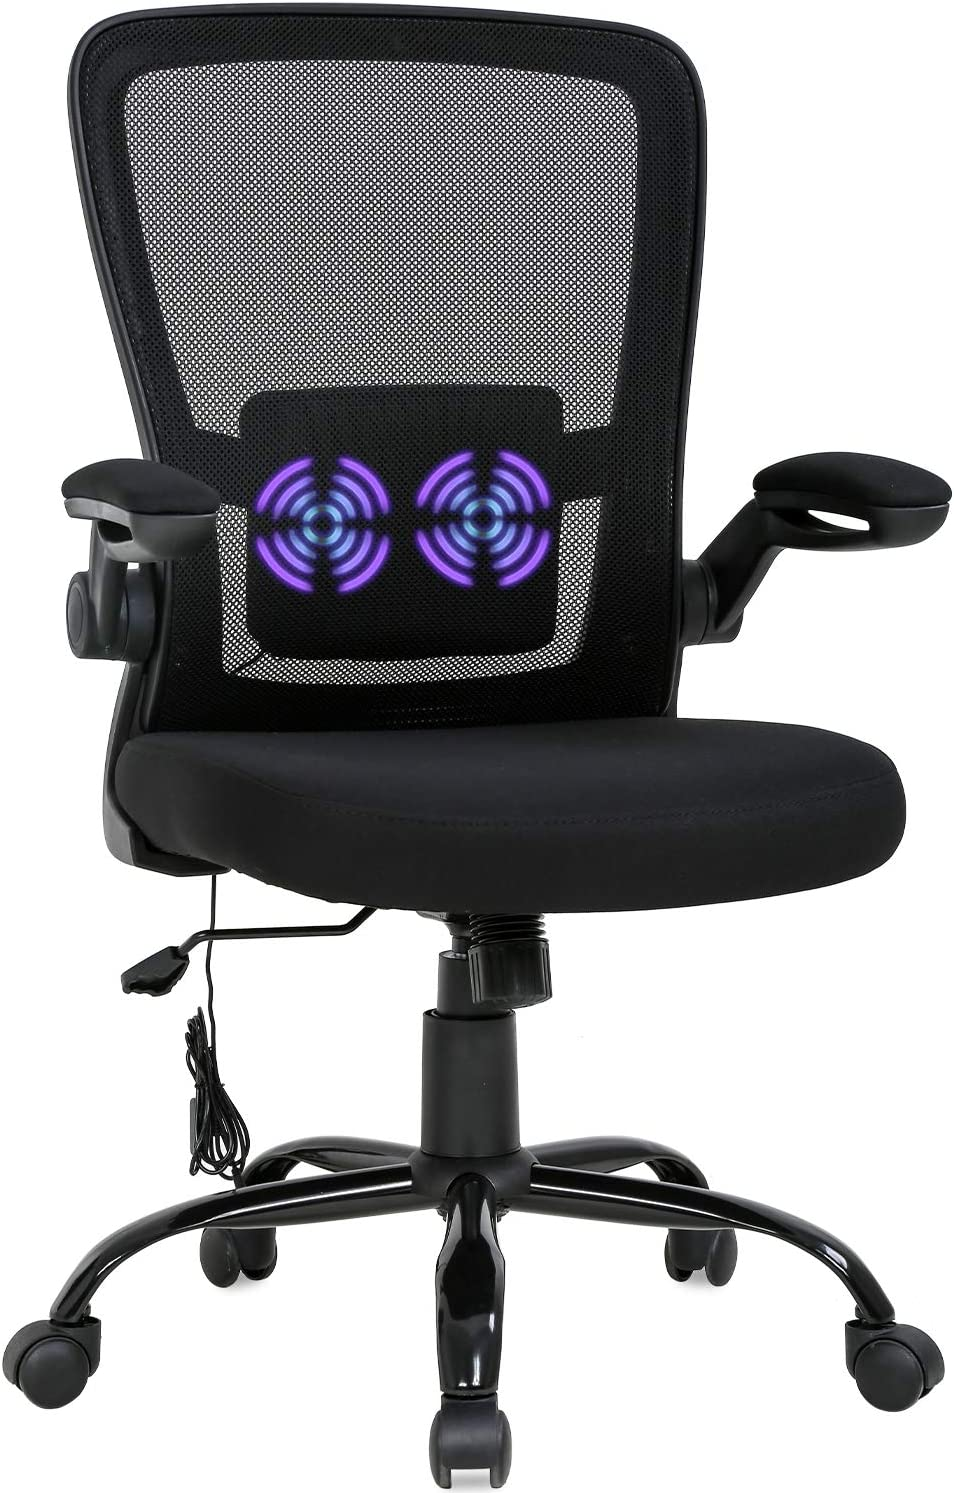 Amazon Com Home Office Chair Ergonomic Desk Chair Massage Computer Chair Swivel Rolling Executive Task Chair With Lumbar Support Arms Mid Back Adjustable Mesh Chair For Women Adults Black Furniture Decor